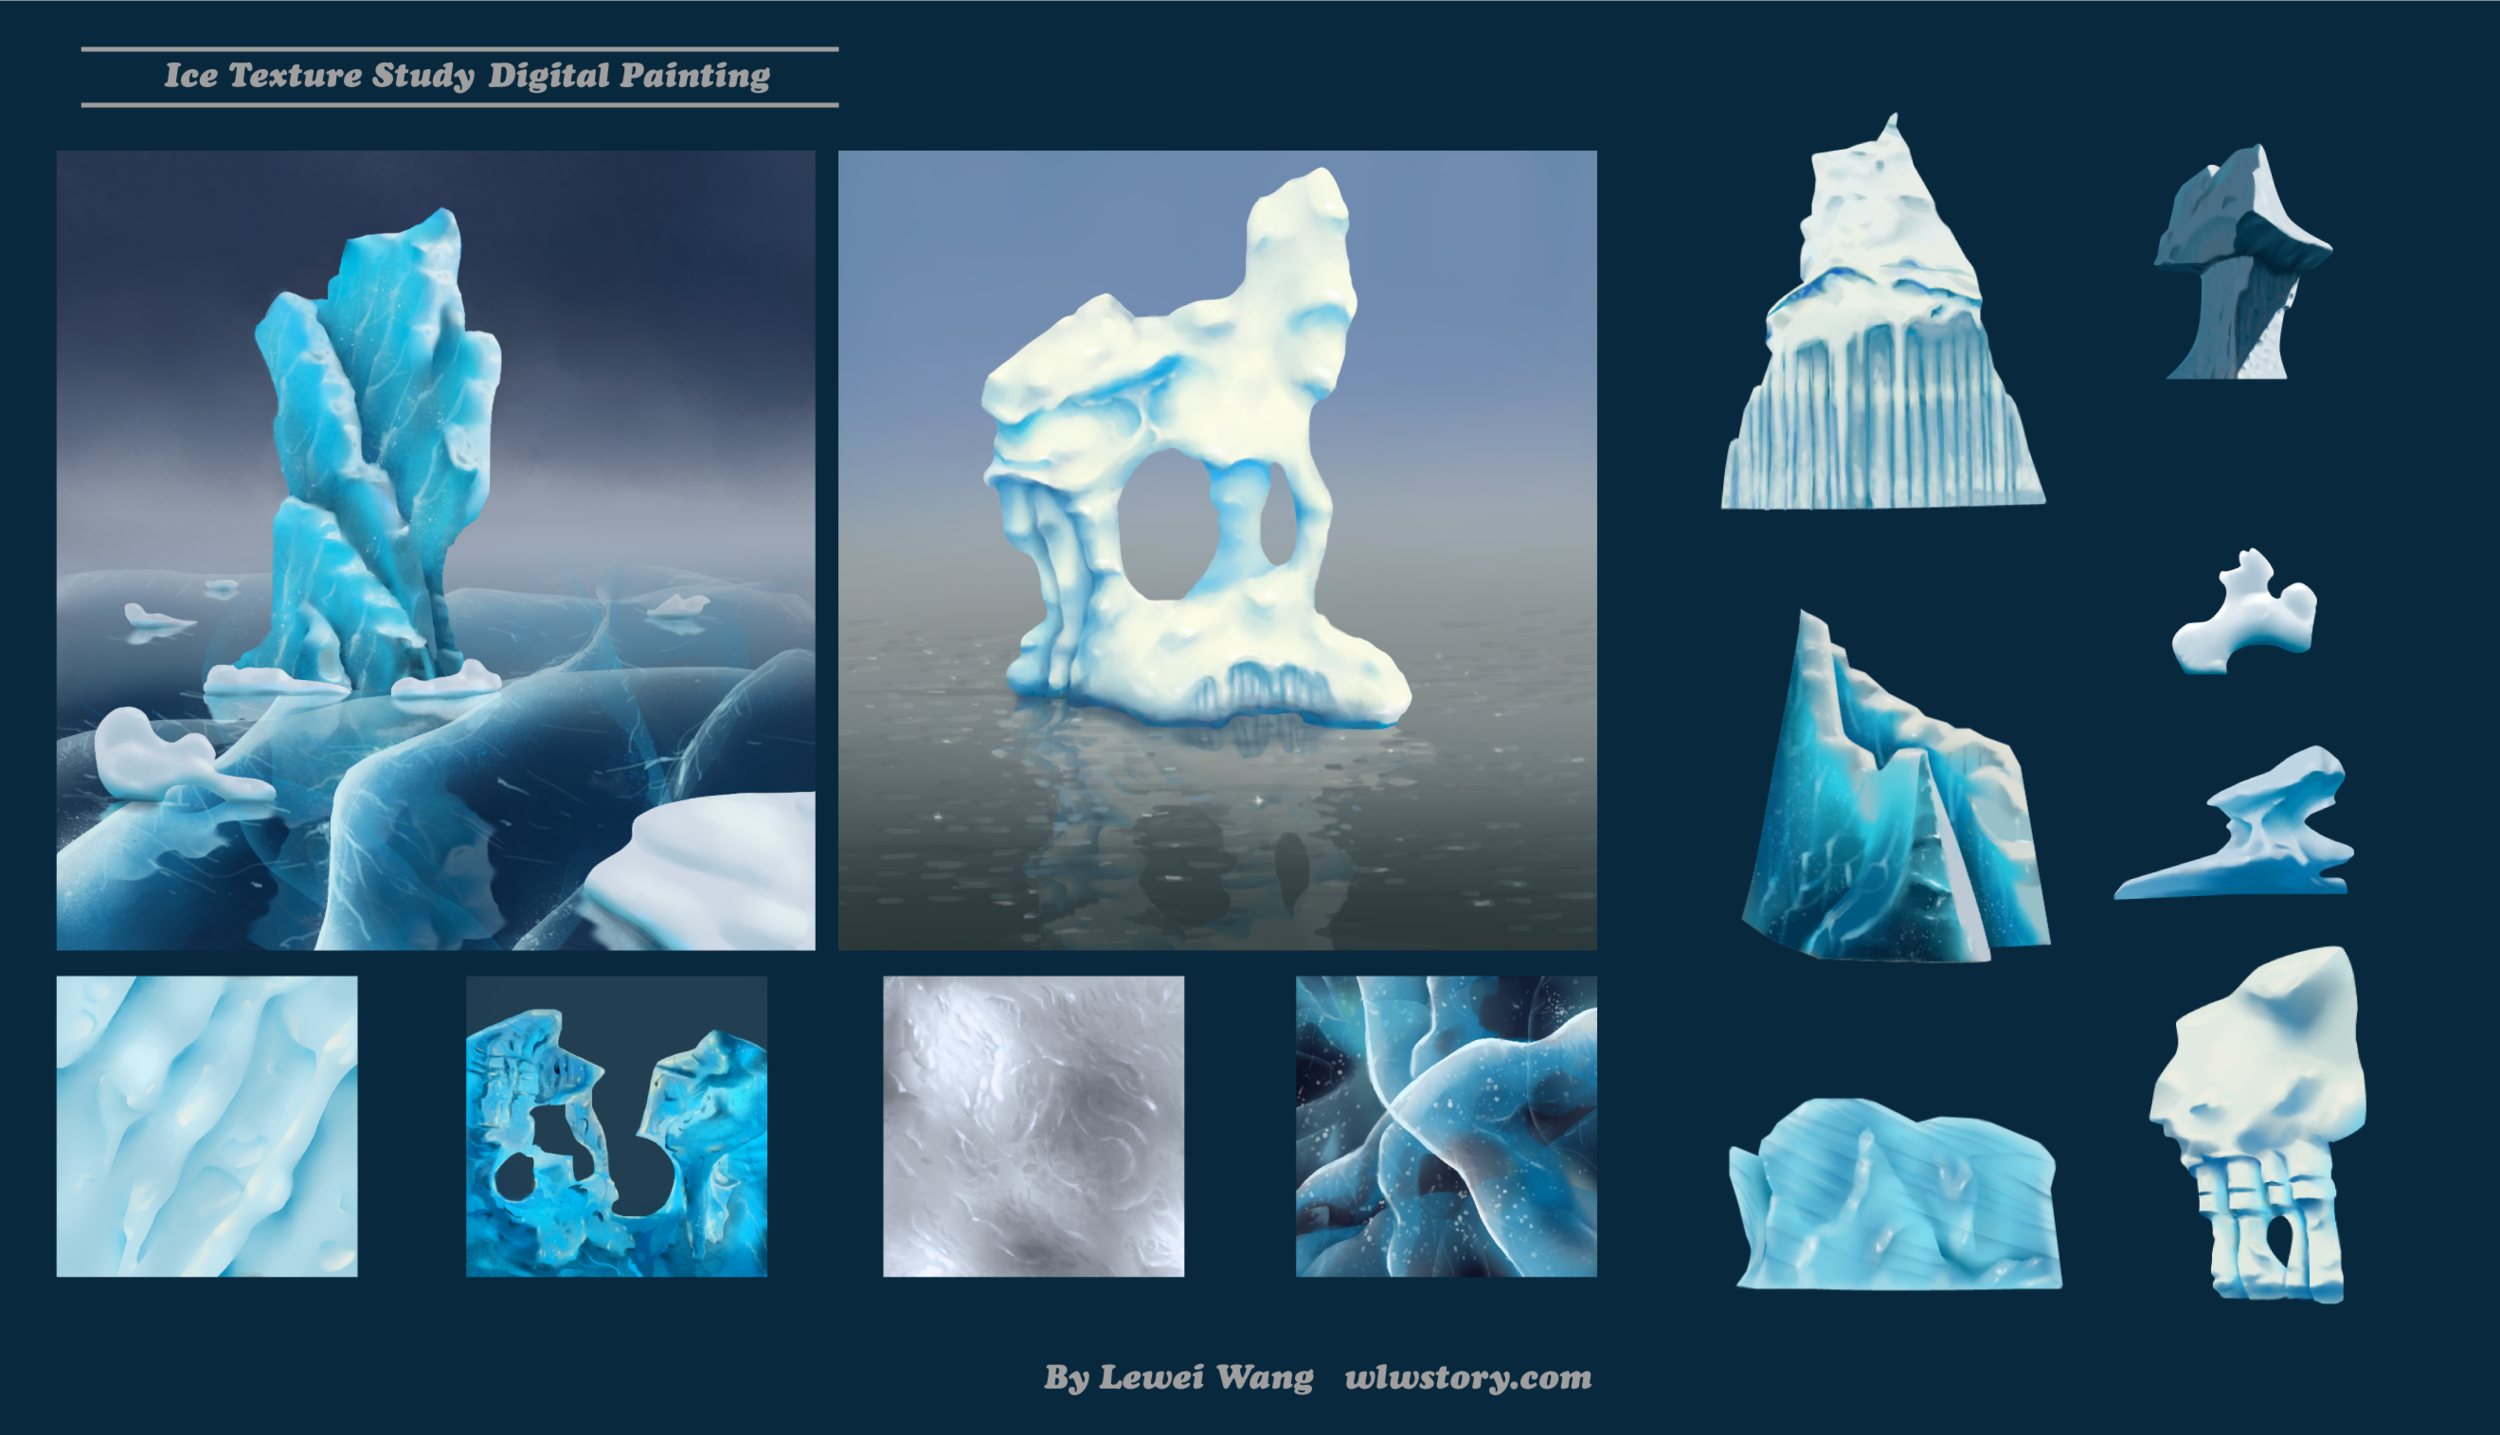 Ice study, including: (1) Texture study of ice surface; (2)Shape study of ice &snow; (3)Icebergs incorporating various textures and shapes of ice & snow. Digital paintings using Photoshop & Illustrator.  This study is inspired by the  ice properties study  of Alexei Nechytaylo for the movie  Arthur Christmas .